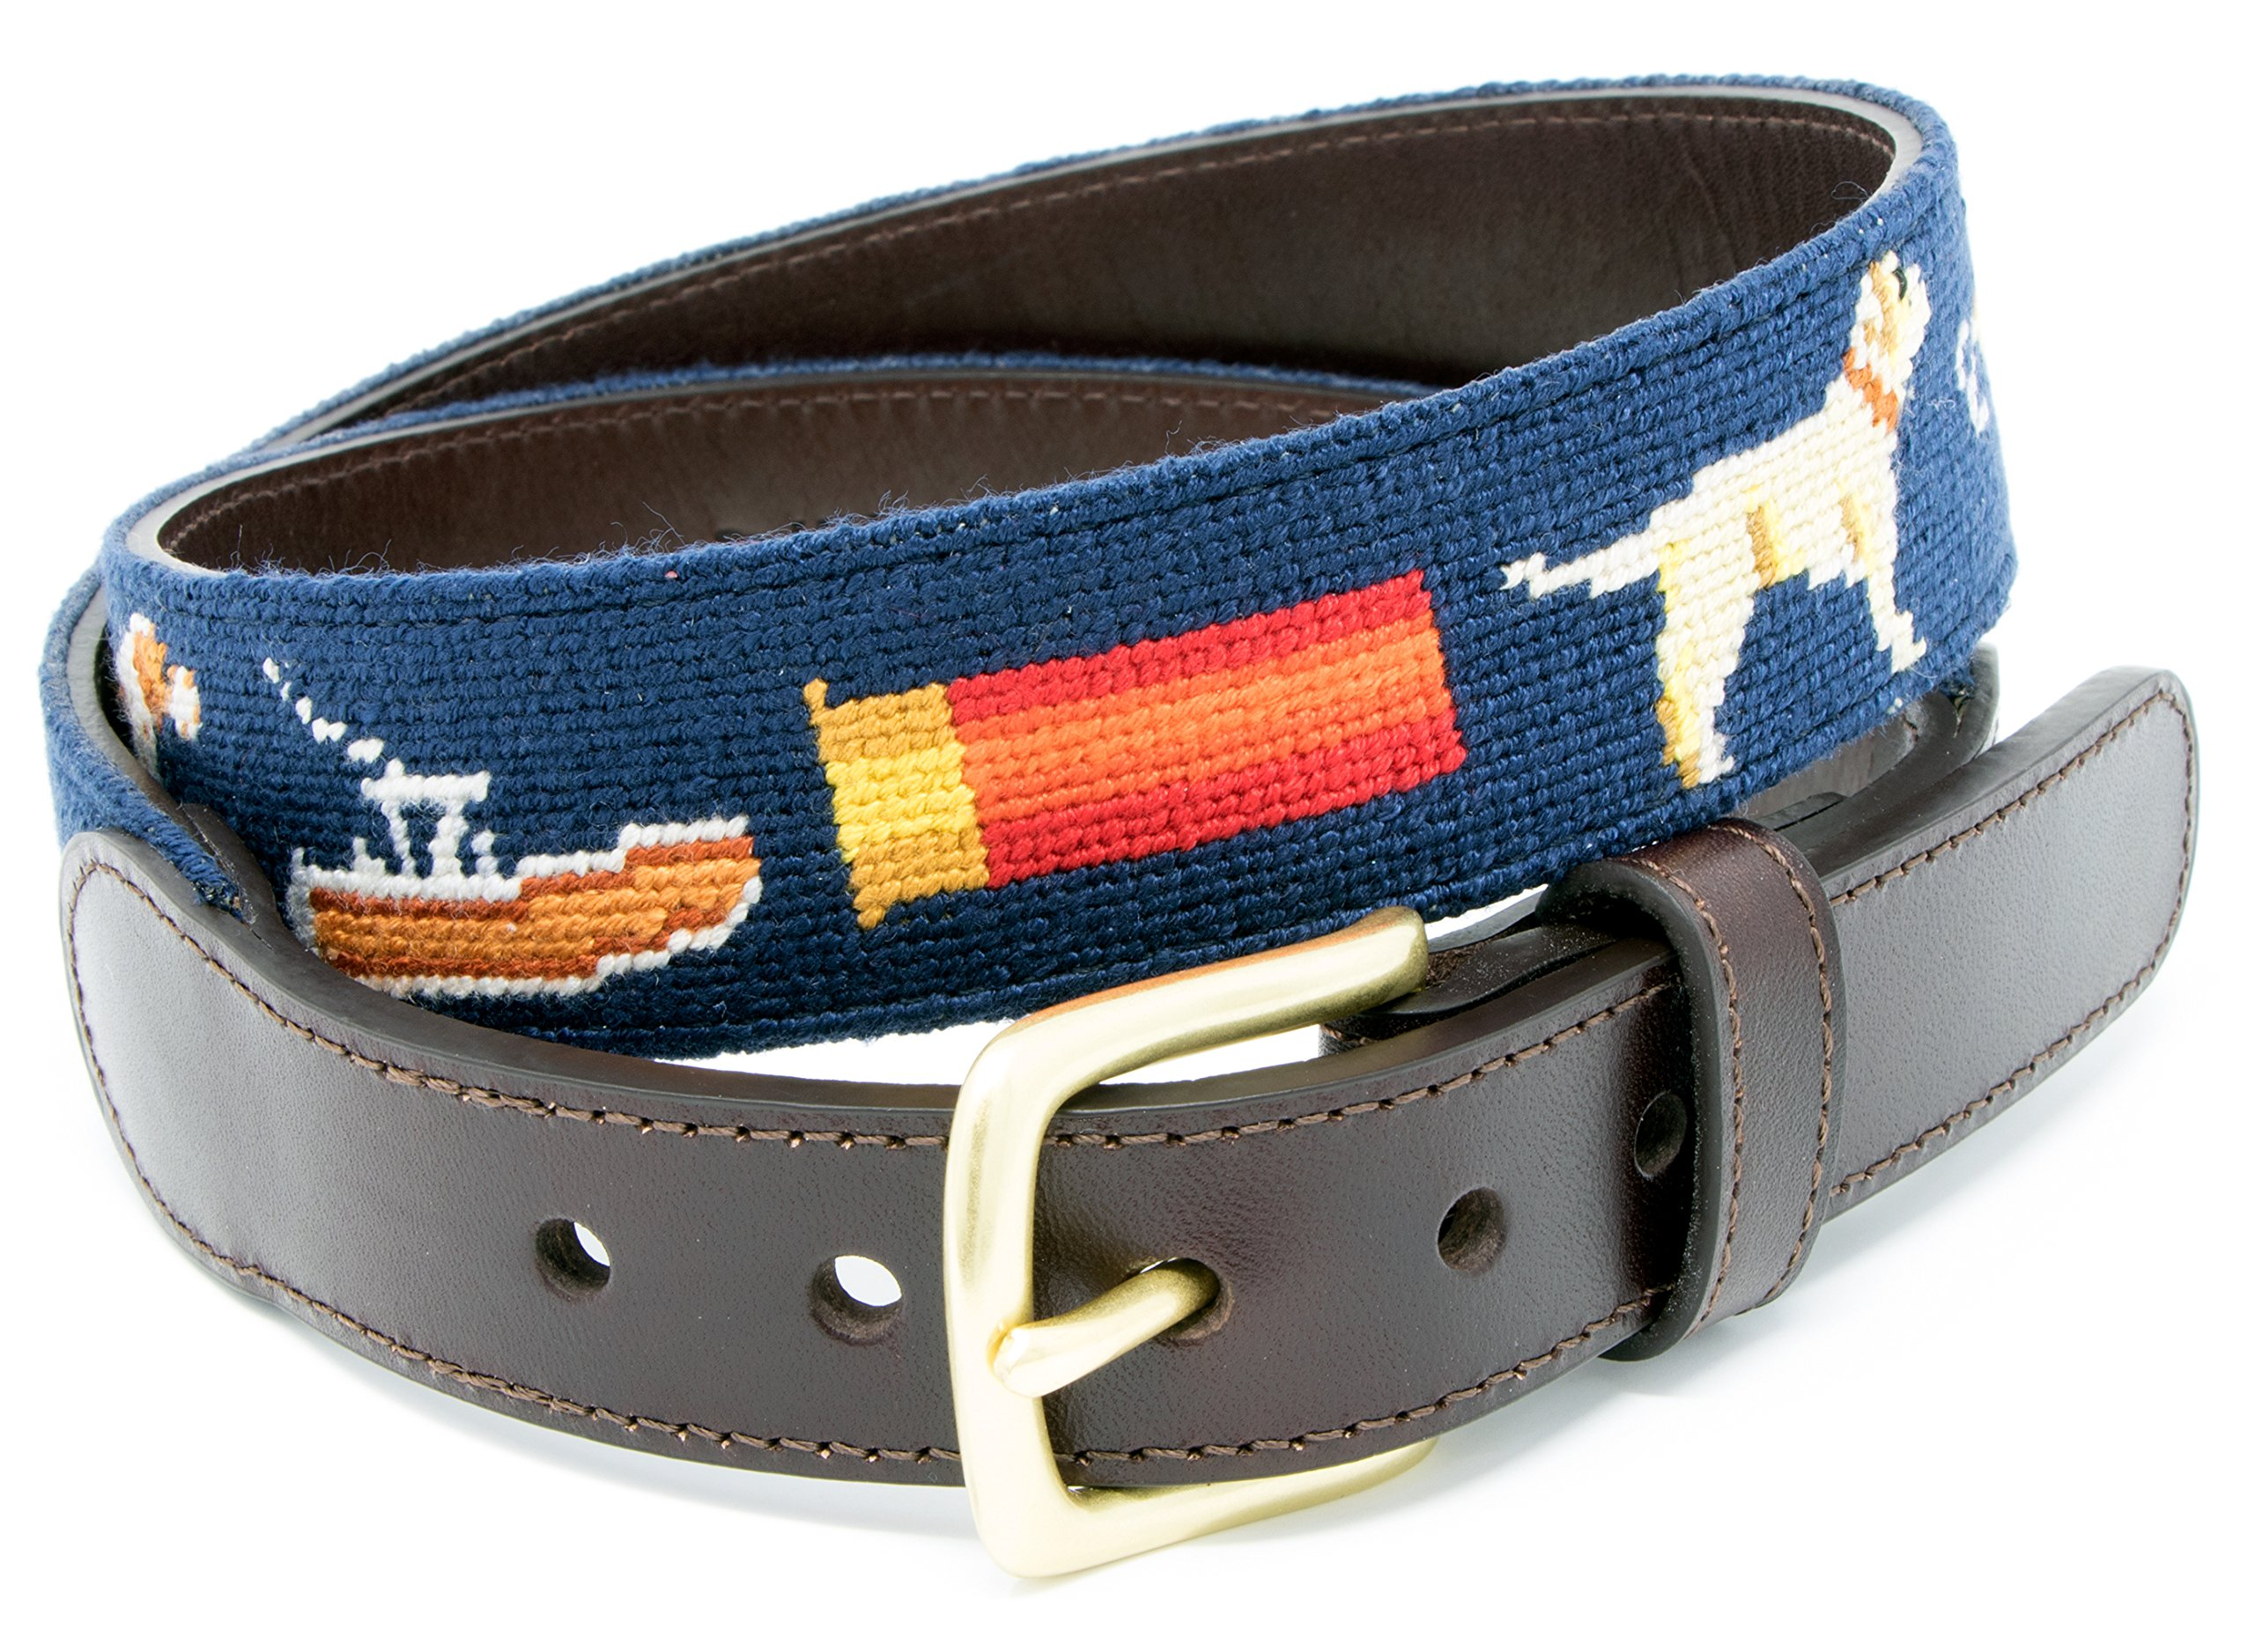 Sportsman Needlepoint Men's Belt Hand-stitched Using Top Quality Cotton on Full Grain Leather Backing (Size 36)